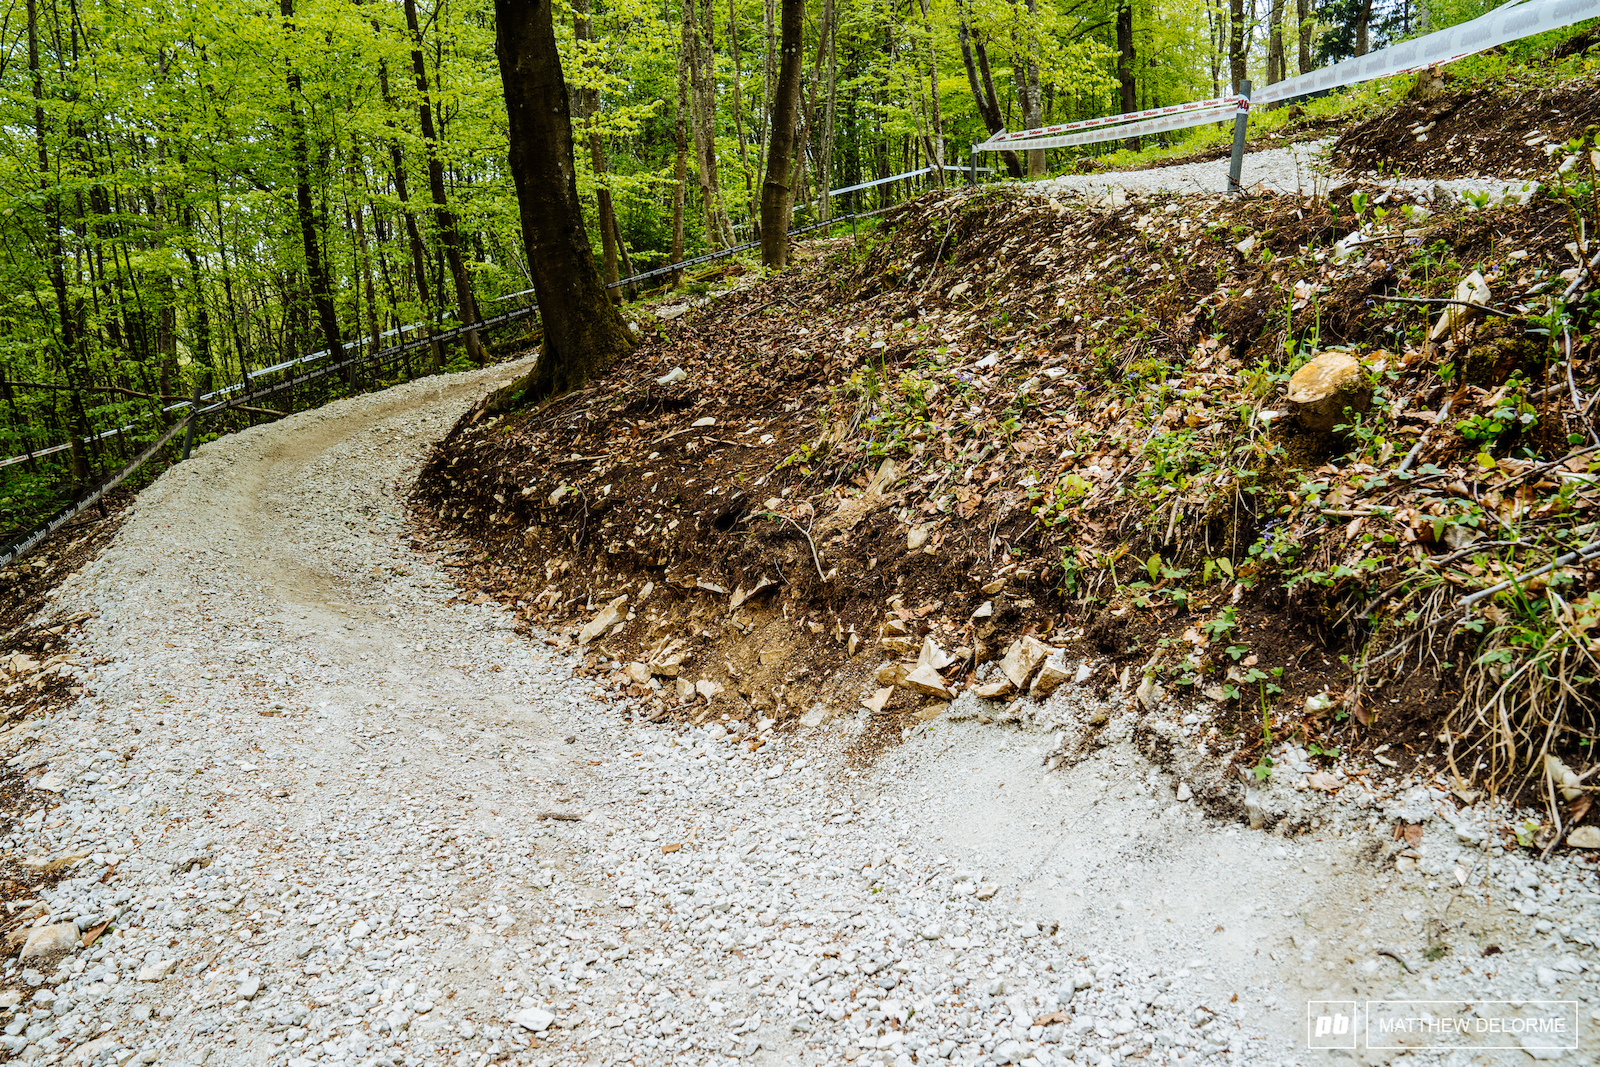 The sheer amount of gravel brought in to build up the trails is mind boggling.